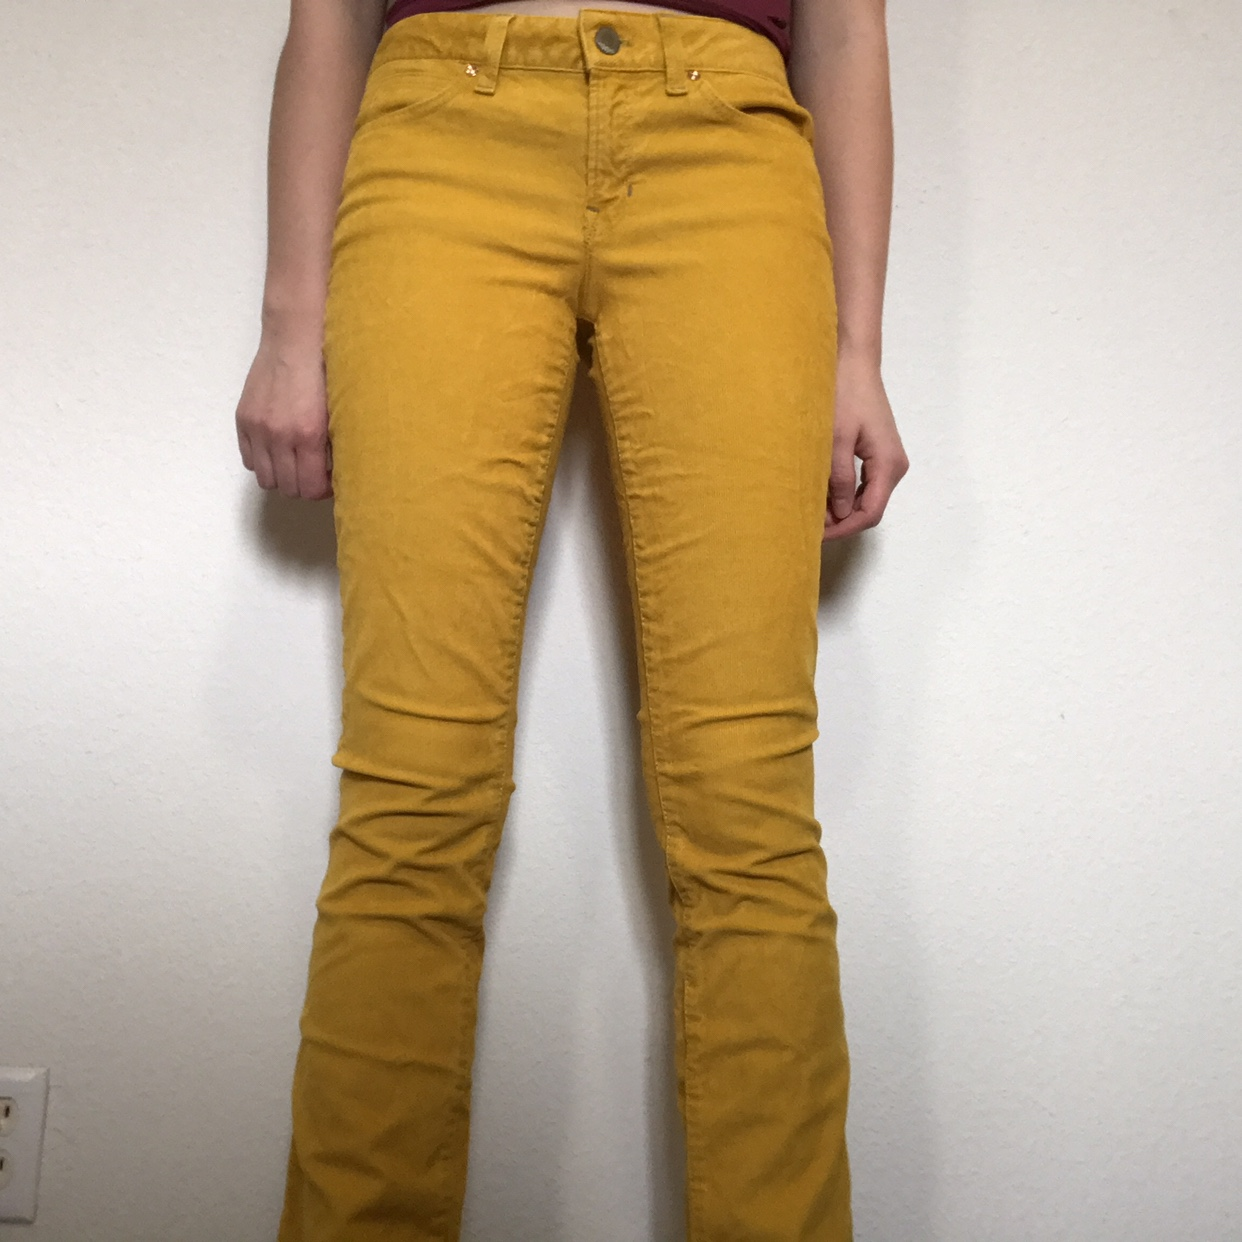 latest design highly coveted range of complimentary shipping gap 1969 yellow corduroy pants. super cute! says... - Depop